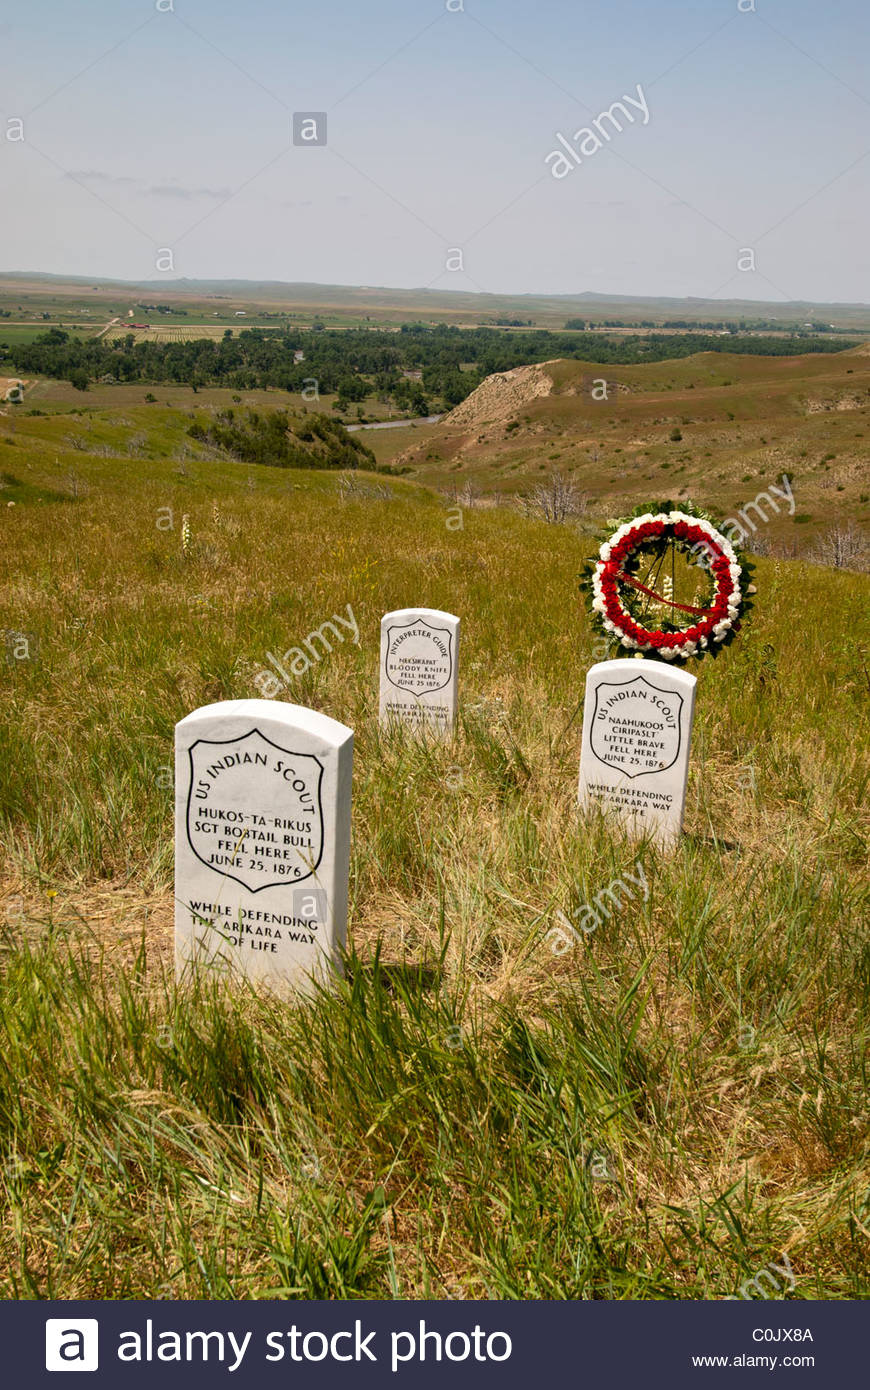 Custer National Forest, Sioux Ranger District Billings, Little Big Horn, and the Montana Plains, Massacre At Little Bighorn Stock Photos & Massacre At Little ...